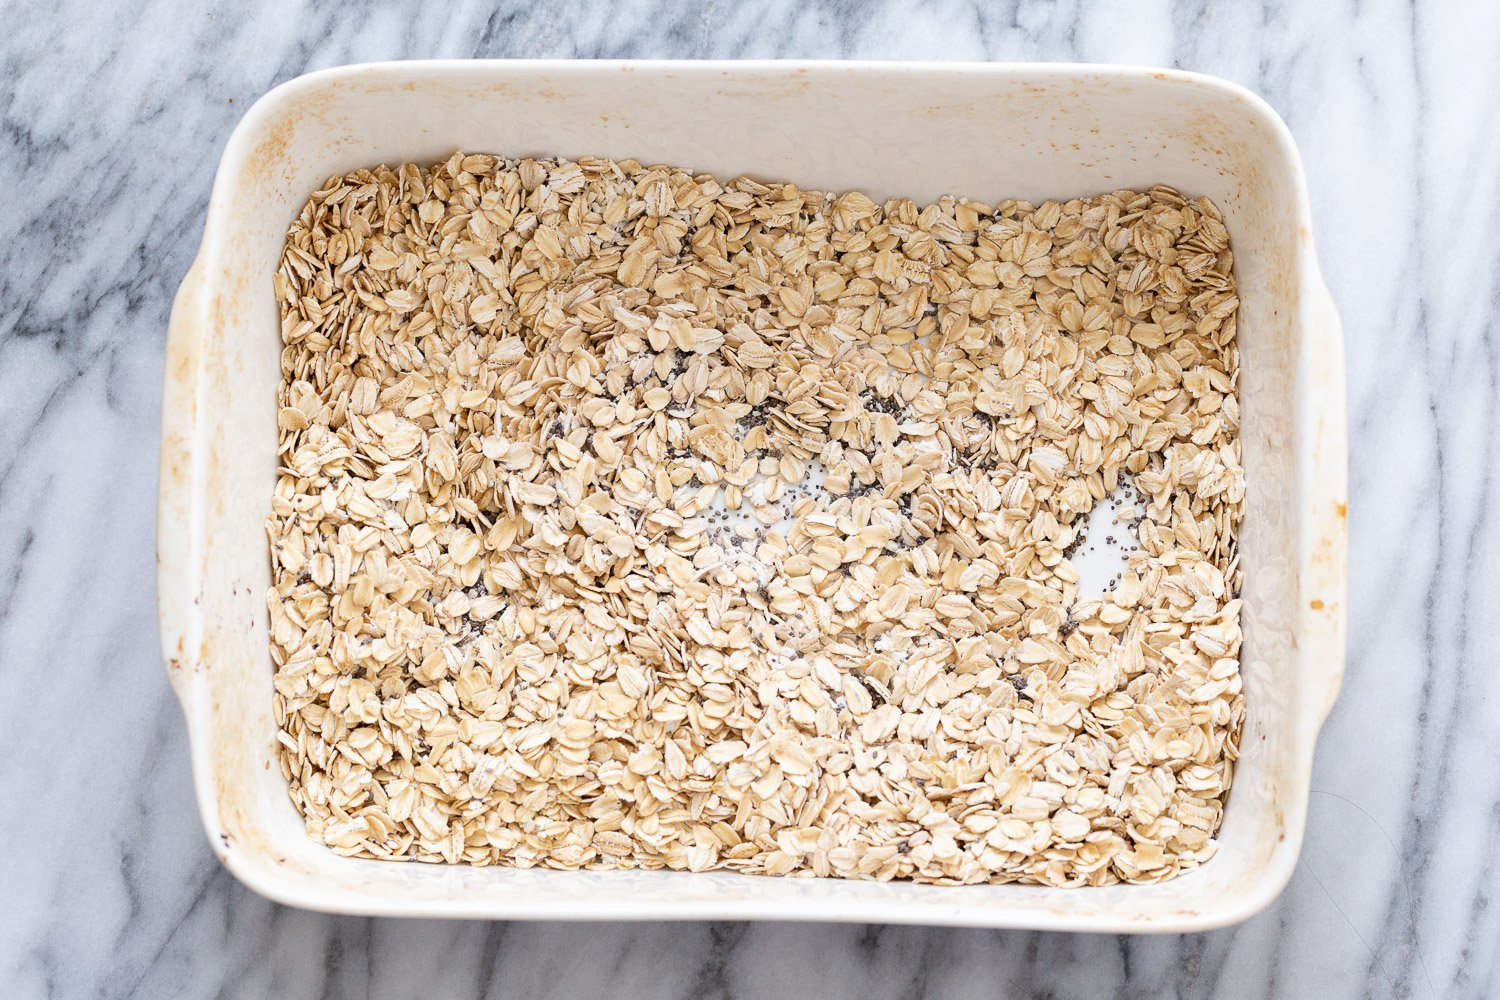 overhead shot of a casserole dish filled with rolled oats and chia seeds